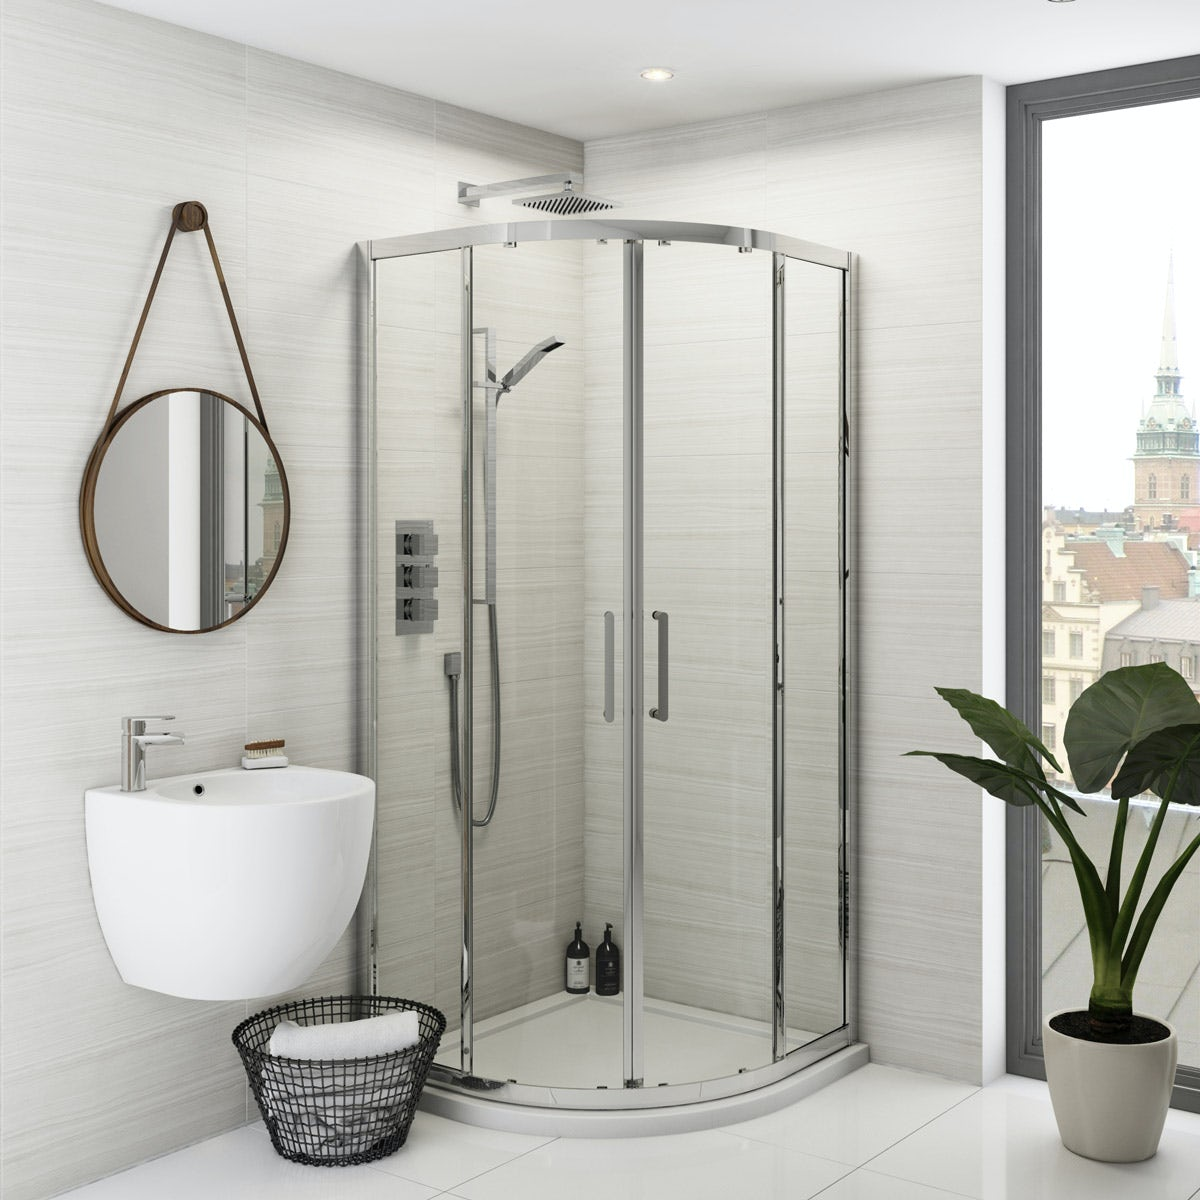 Mode Ellis premium 8mm easy clean quadrant shower enclosure 800 x 800